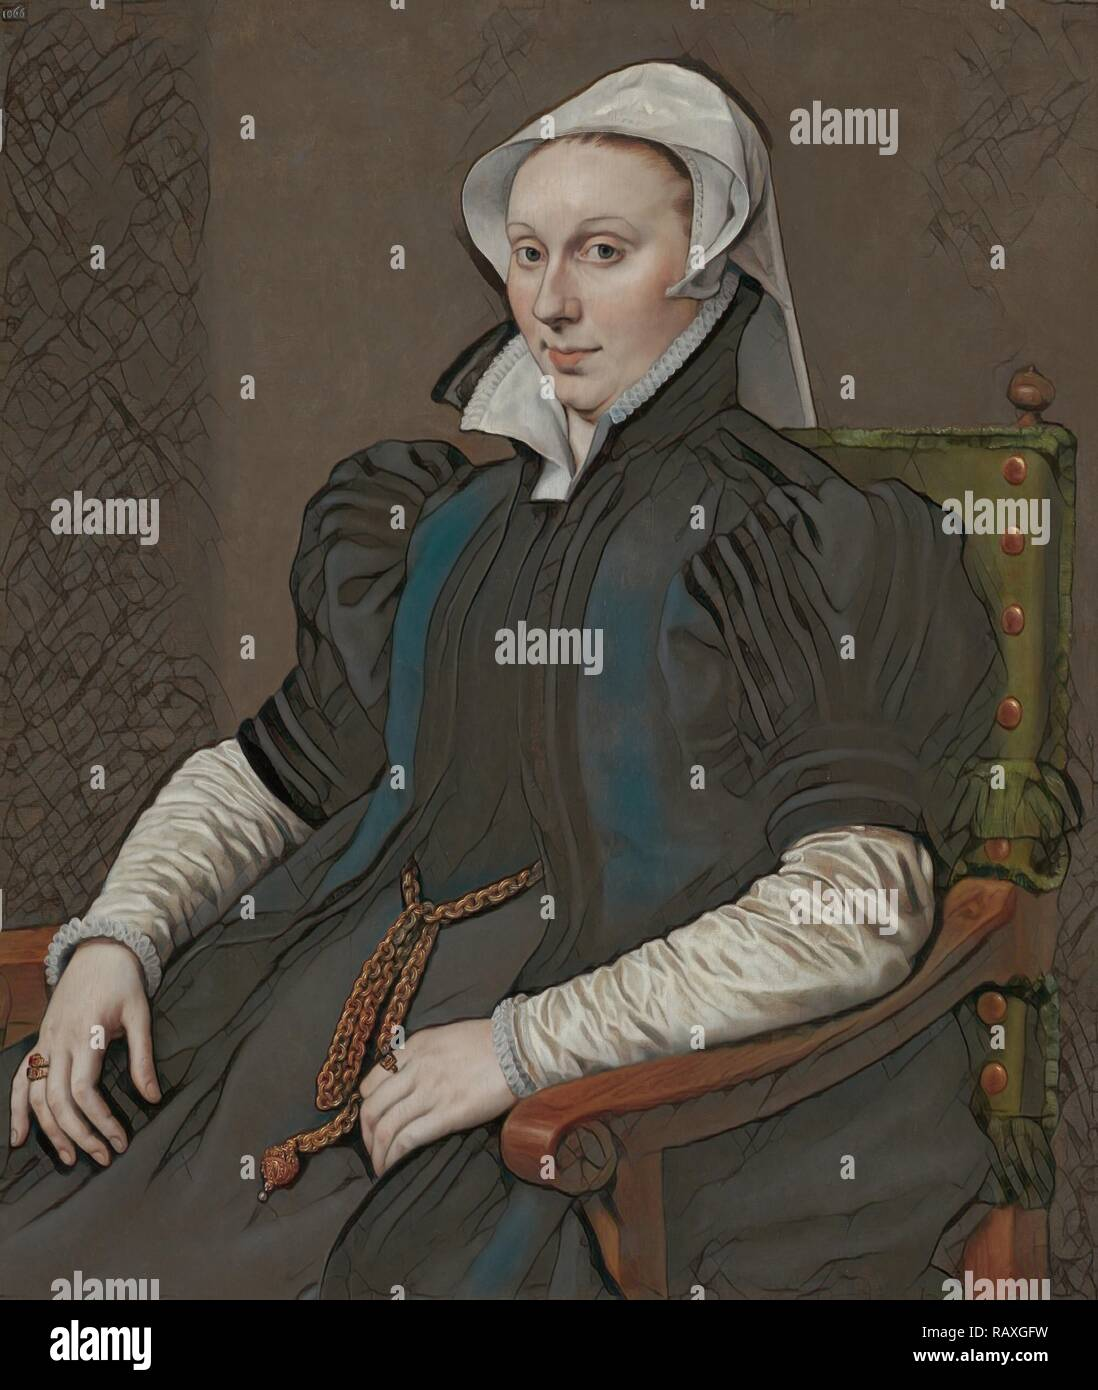 Portraits of Sir Thomas Gresham and Anne Fernely, Anthonis Mor, c. 1560 - c. 1565. Reimagined by Gibon. Classic art reimagined - Stock Image